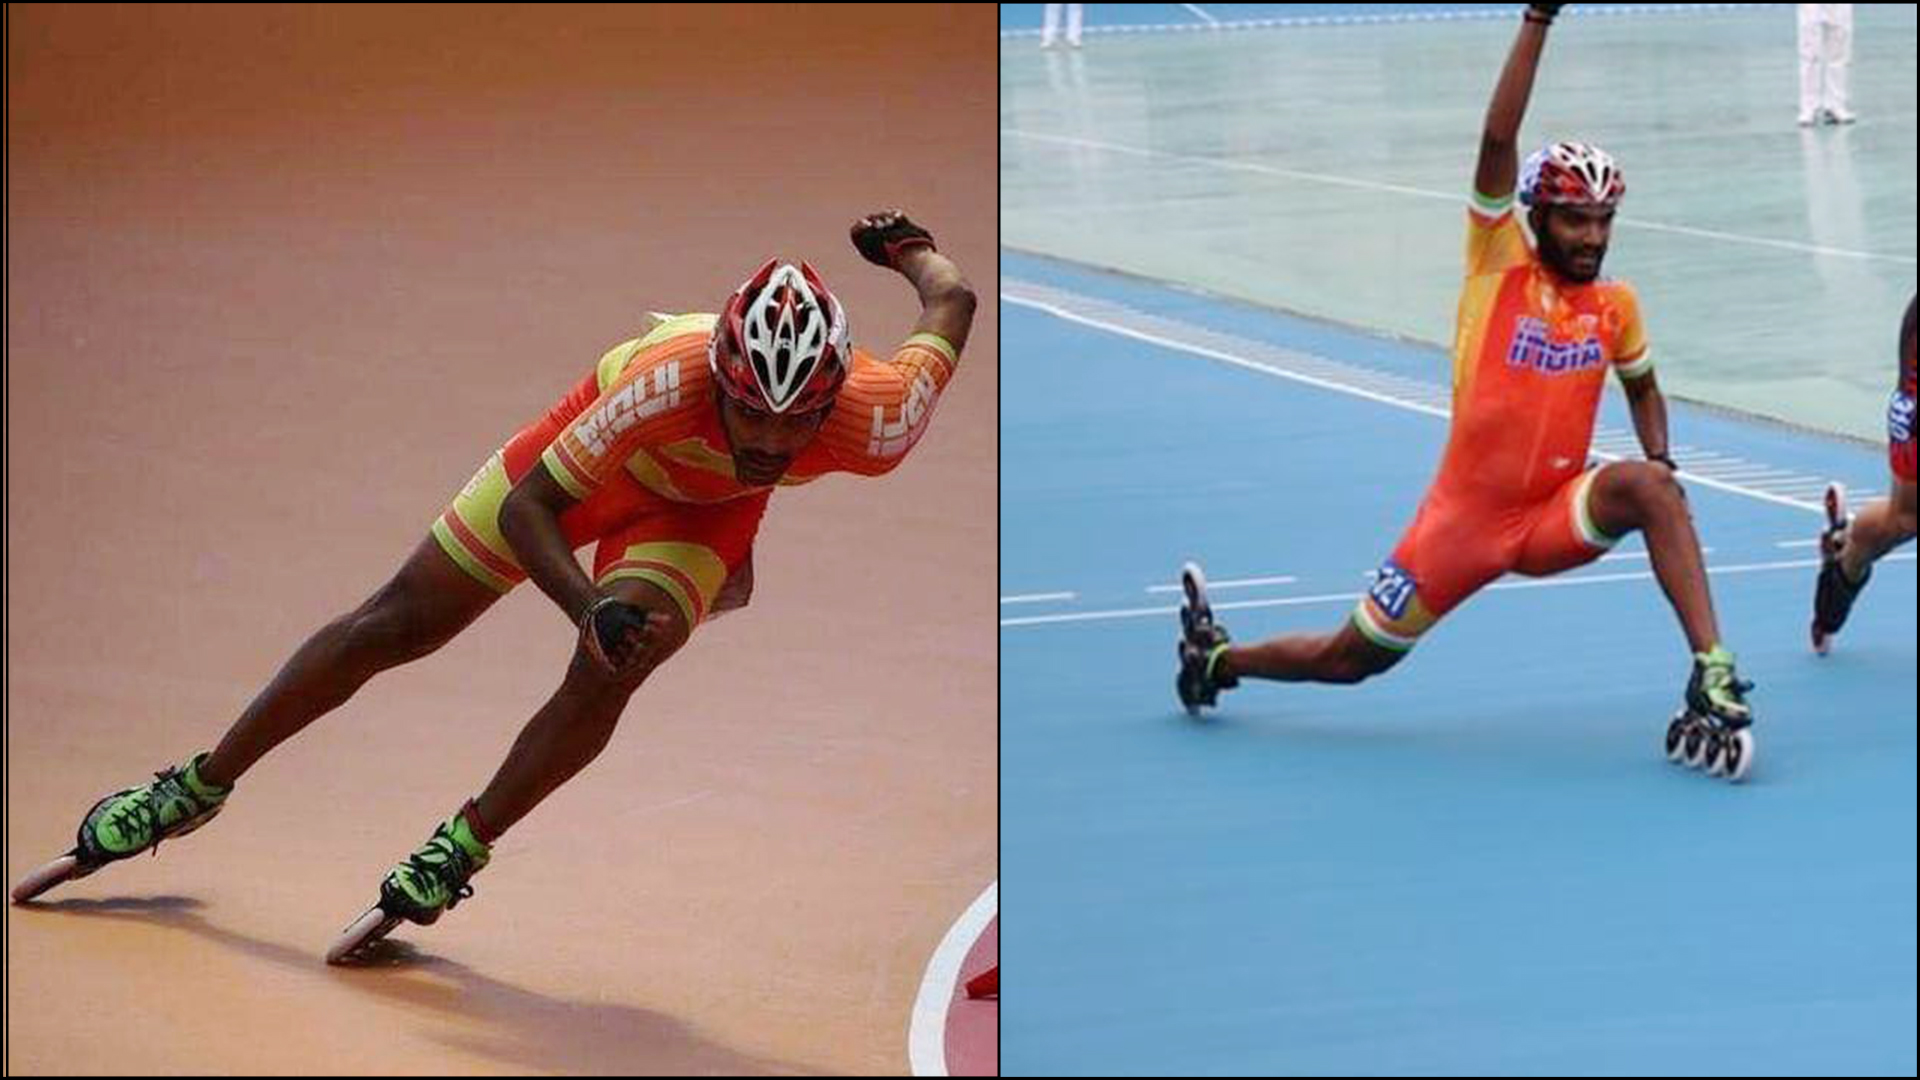 Speed Skater Vikram Ingale's way of facing downfalls is a strong dosage of motivation!